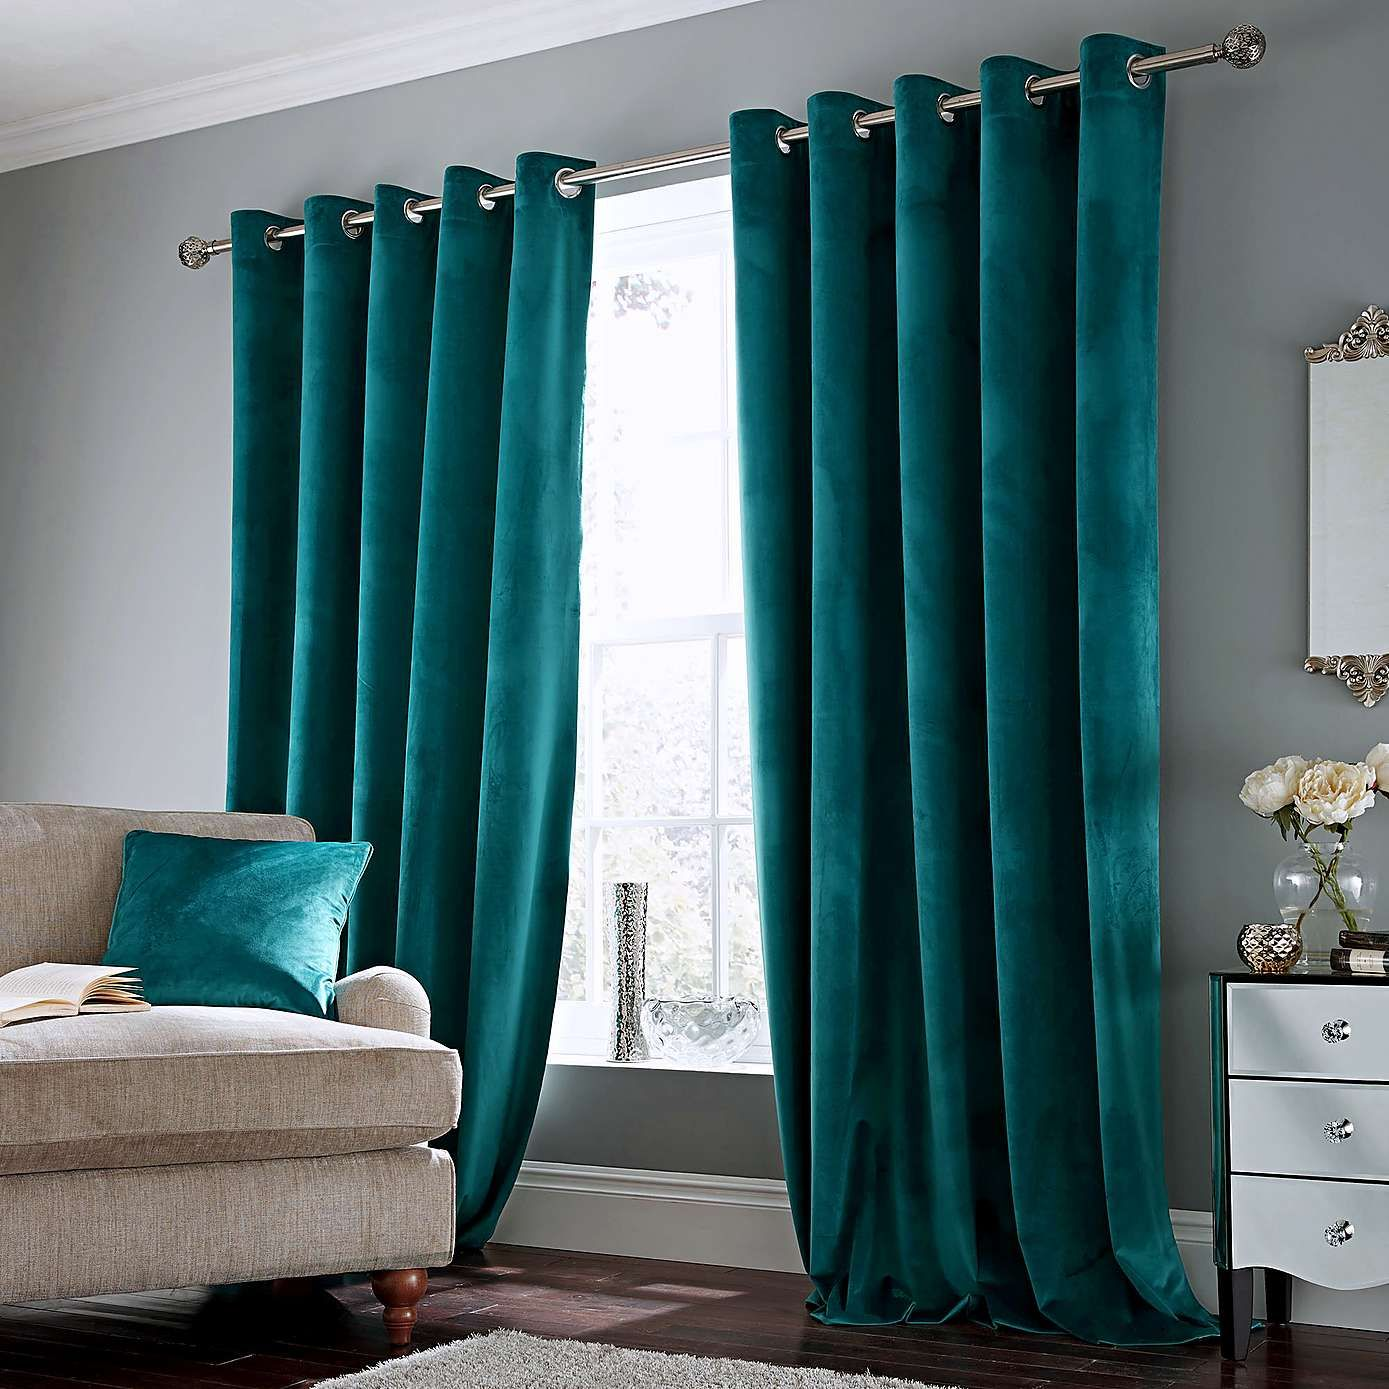 Ashford Teal Velour Eyelet Curtains | Teal living rooms ...